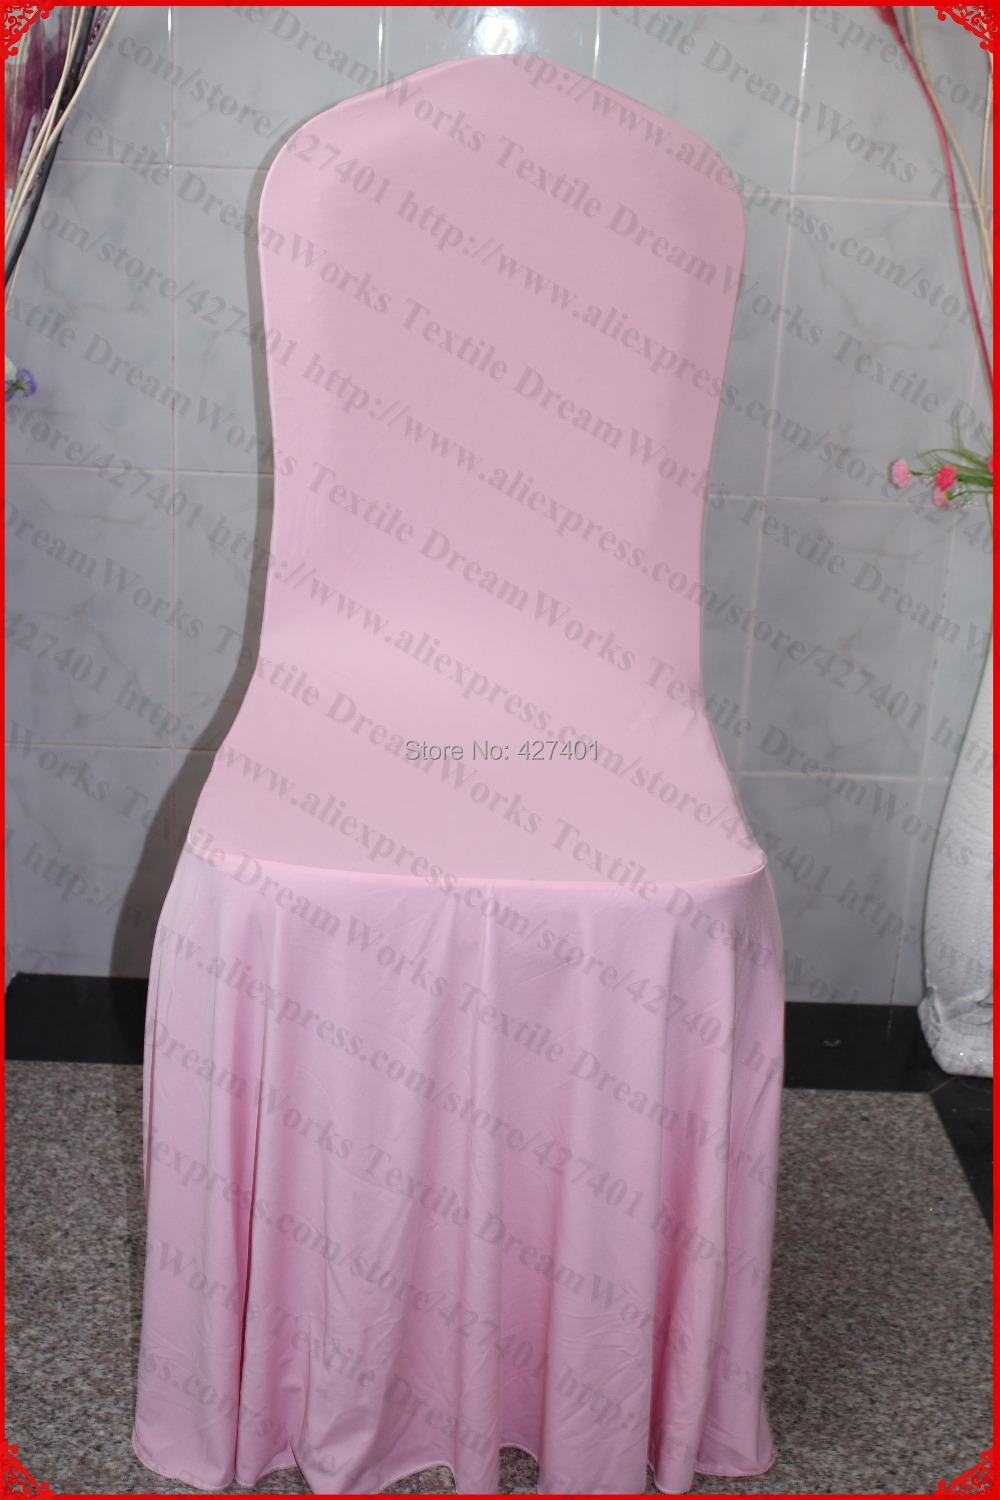 Light Pink Spandex Chair Covers Dining Seat Pillows Elegant Pleated Swag Cover Lycra Backdrop For Wedding Party Banquet Home Decorations In From Garden